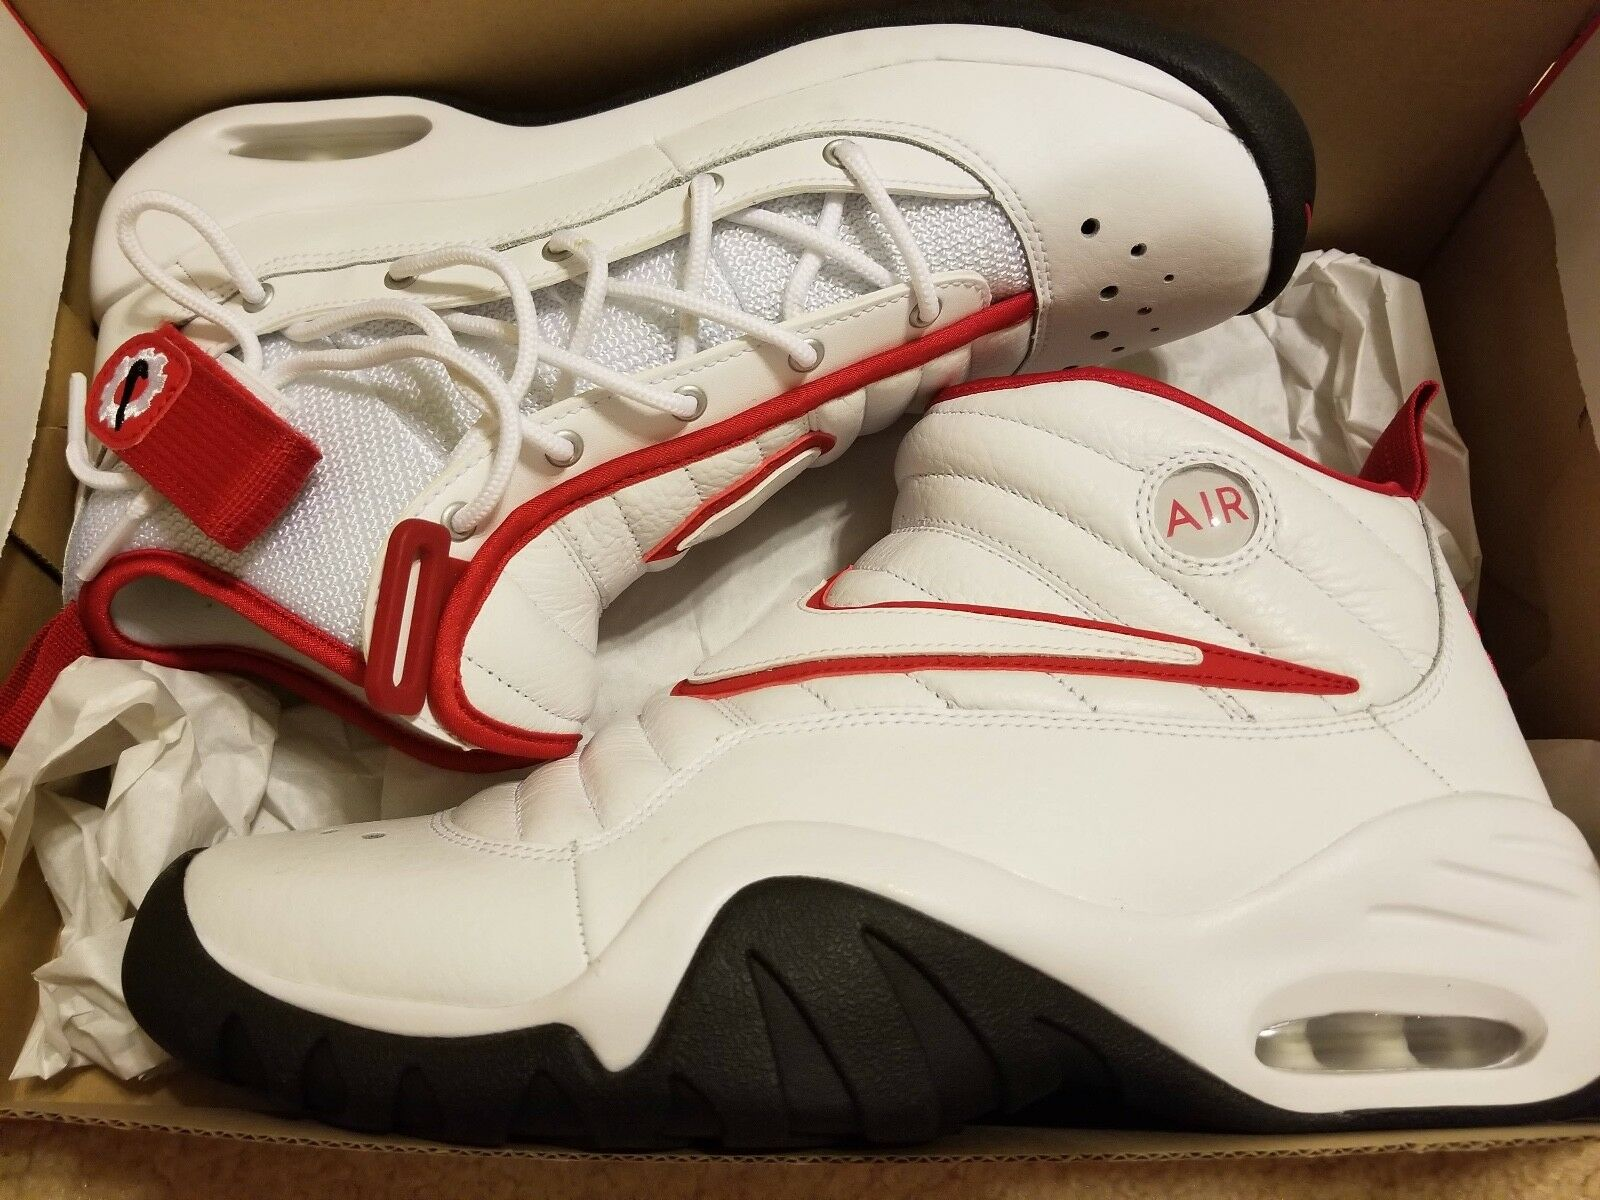 Nike Air ndestrukt , size 10, Great condition